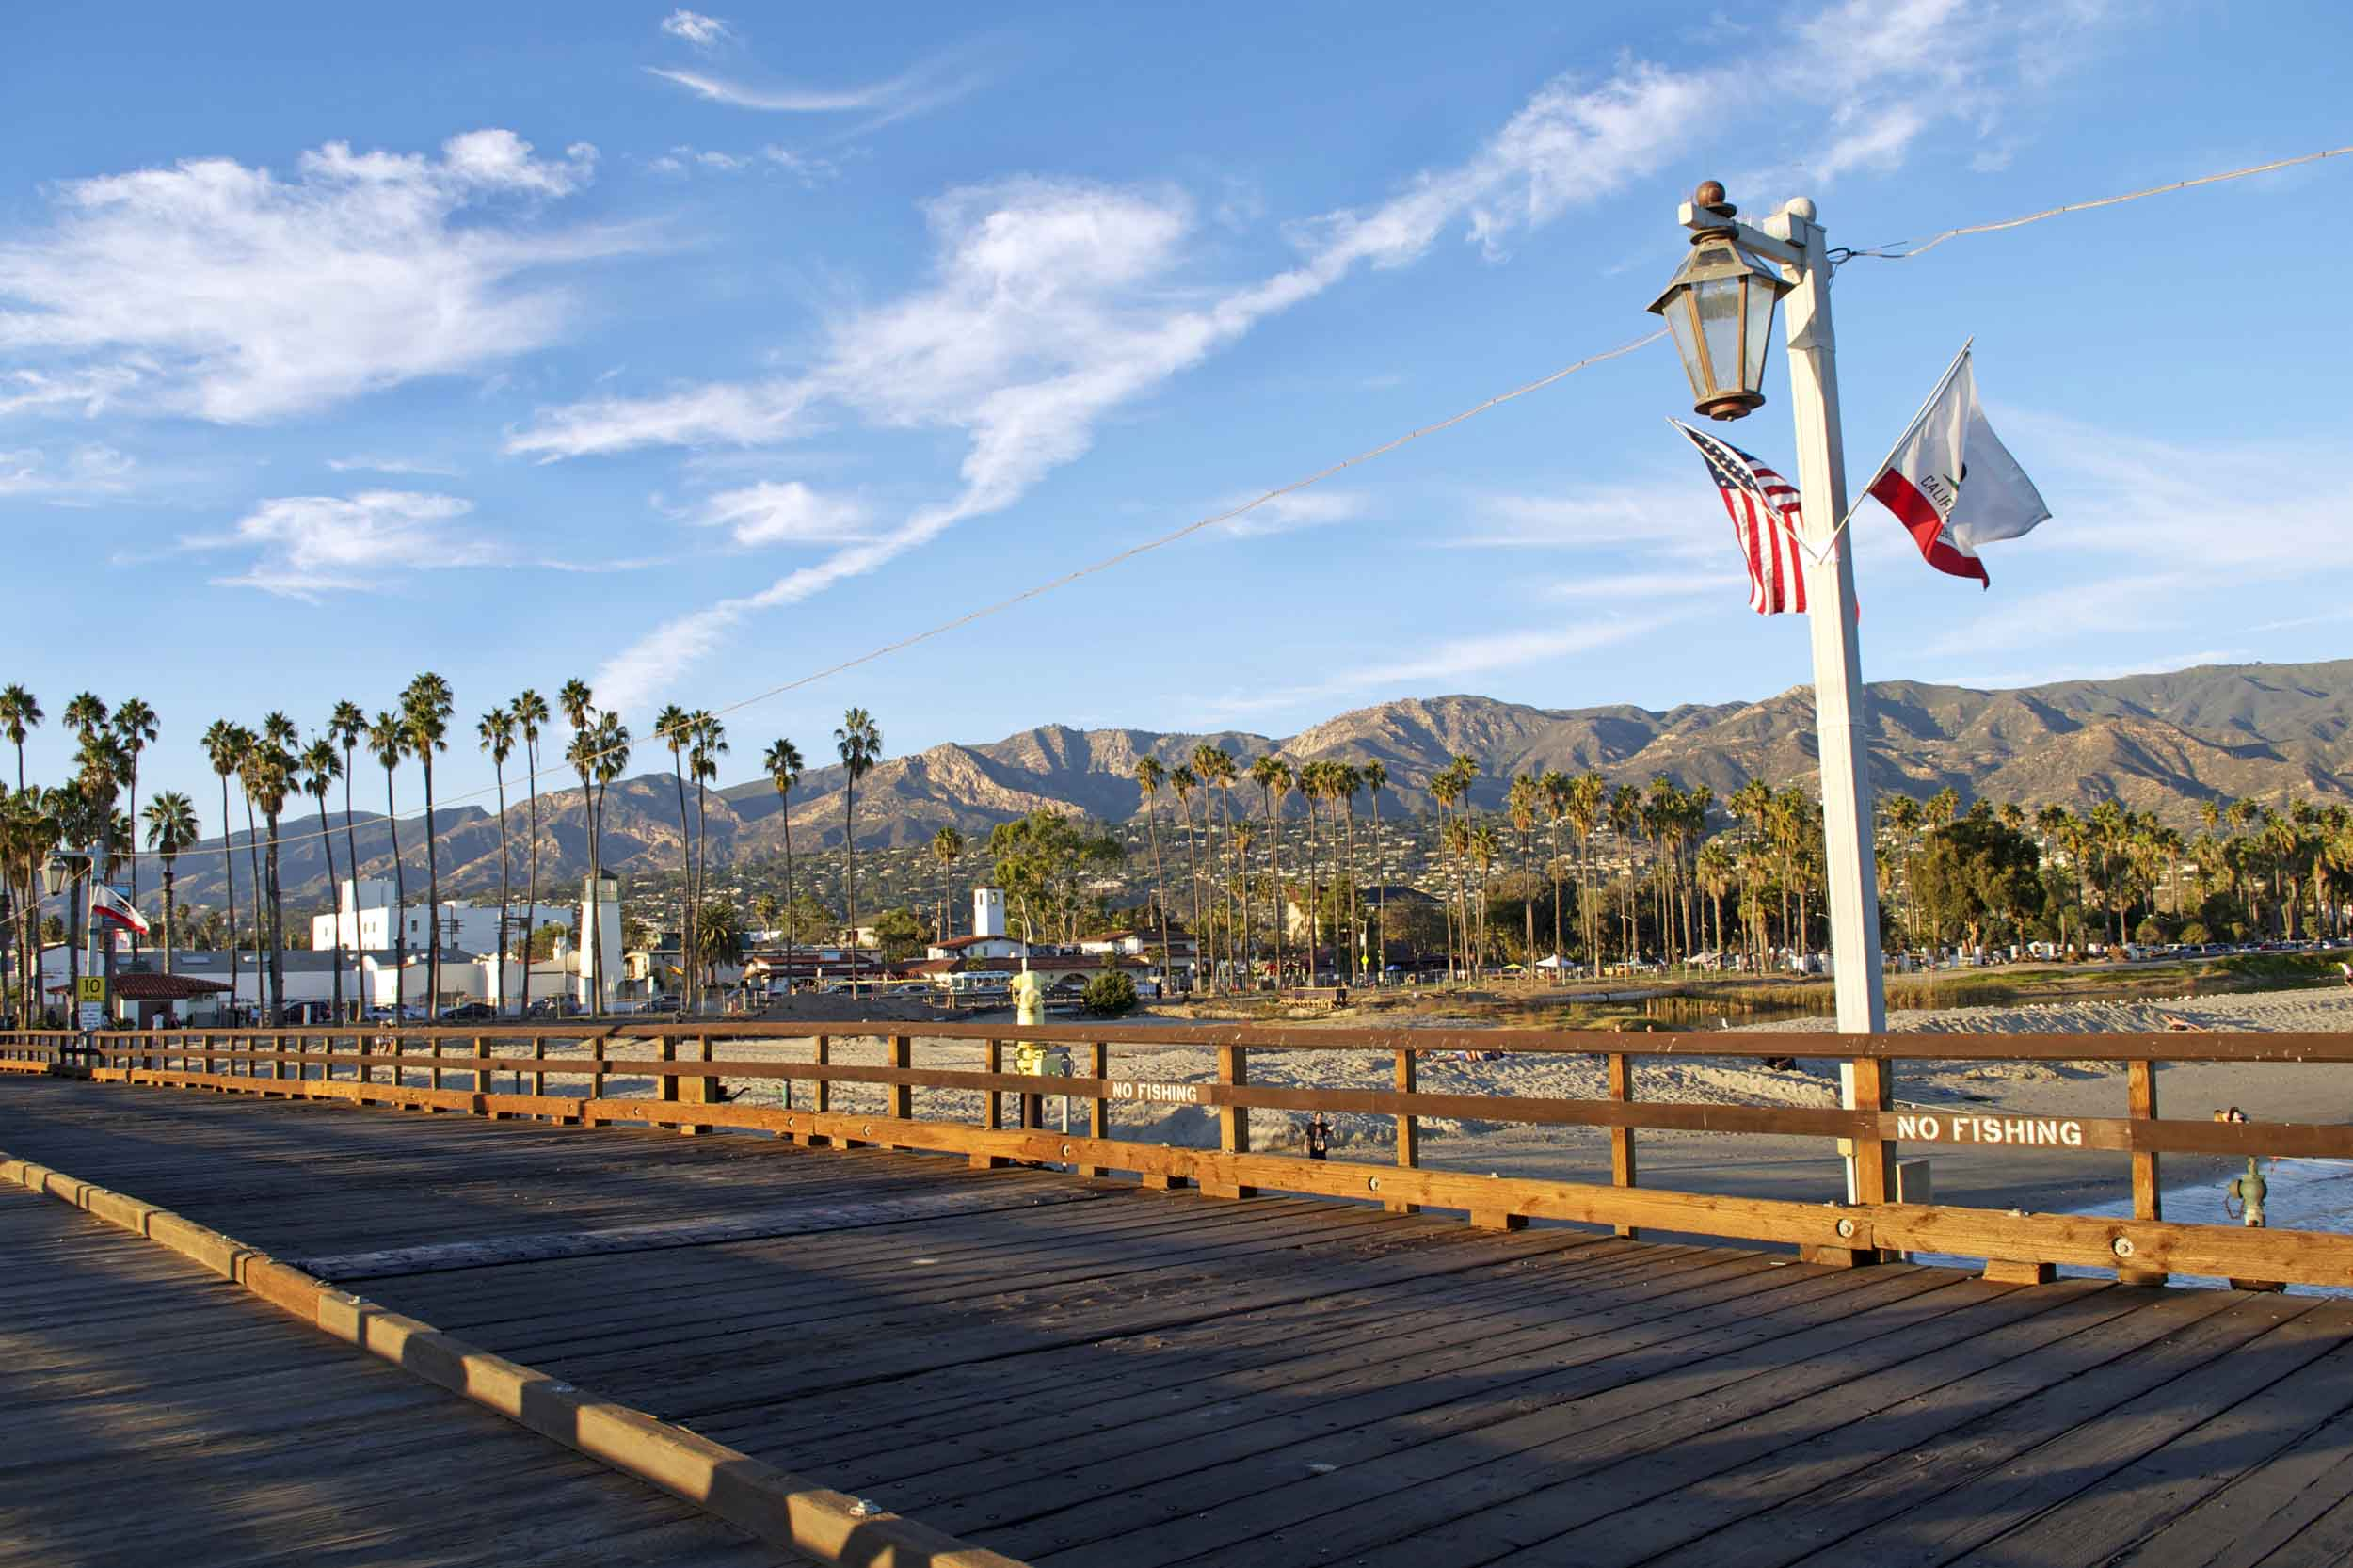 Santa Barbara Travel Tips Know Before You Go